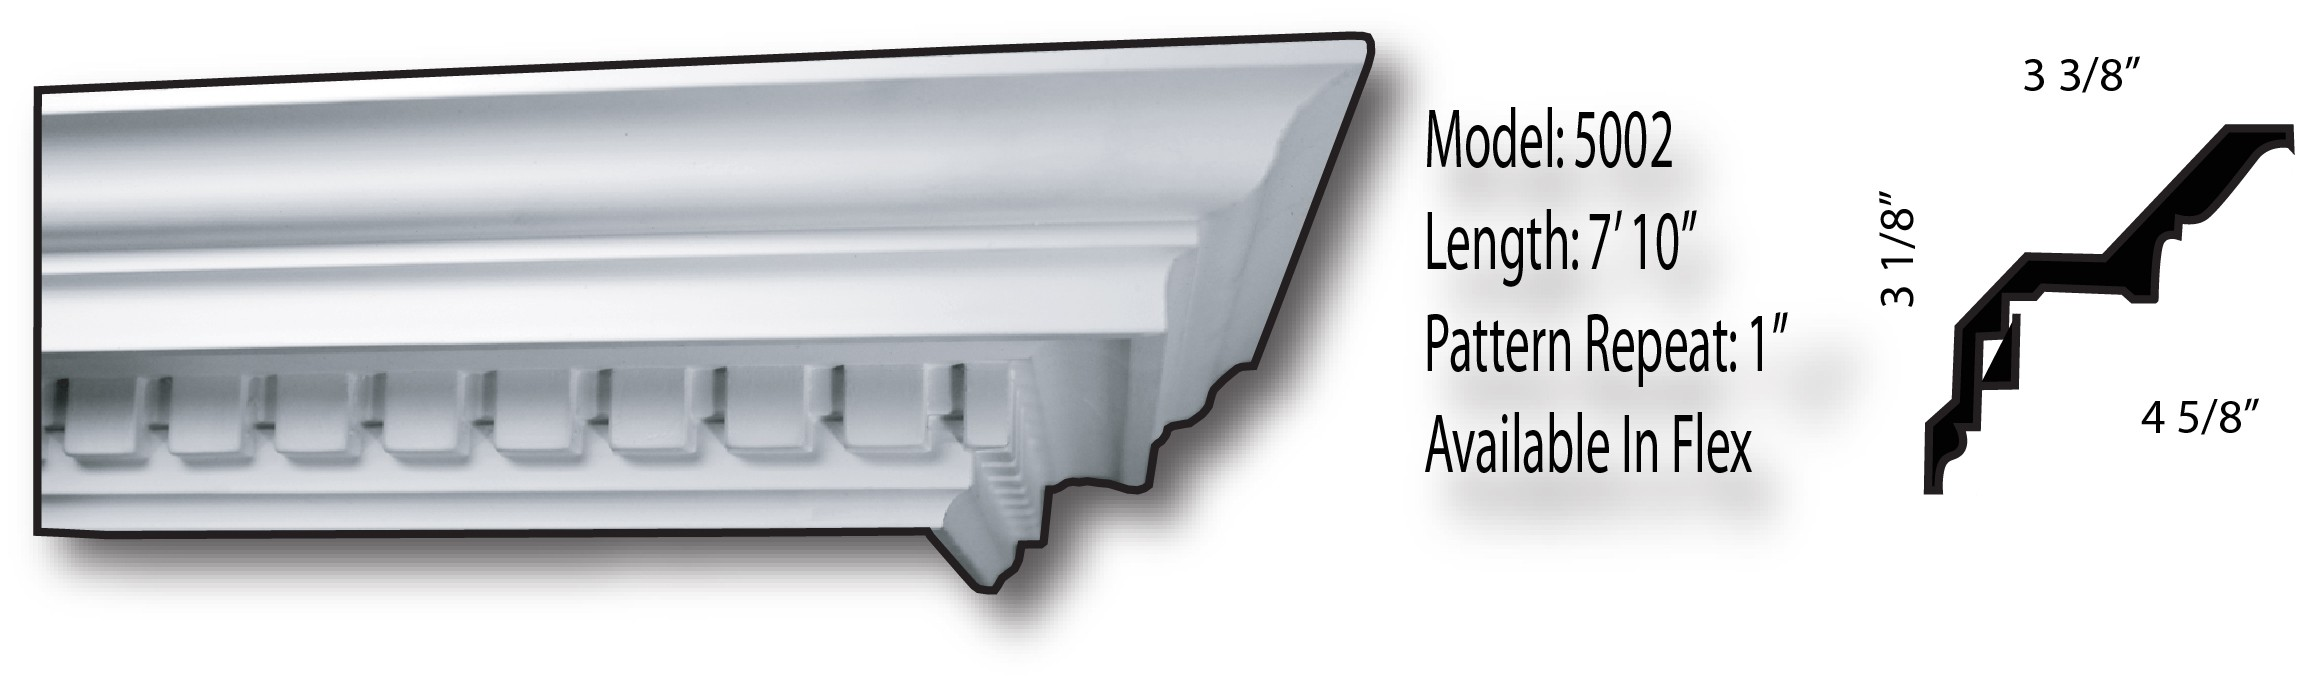 """Rigid Crown Molding: 3-3/8"""" projection, 3-1/8"""" drop, 4-5/8"""" tip to tip"""